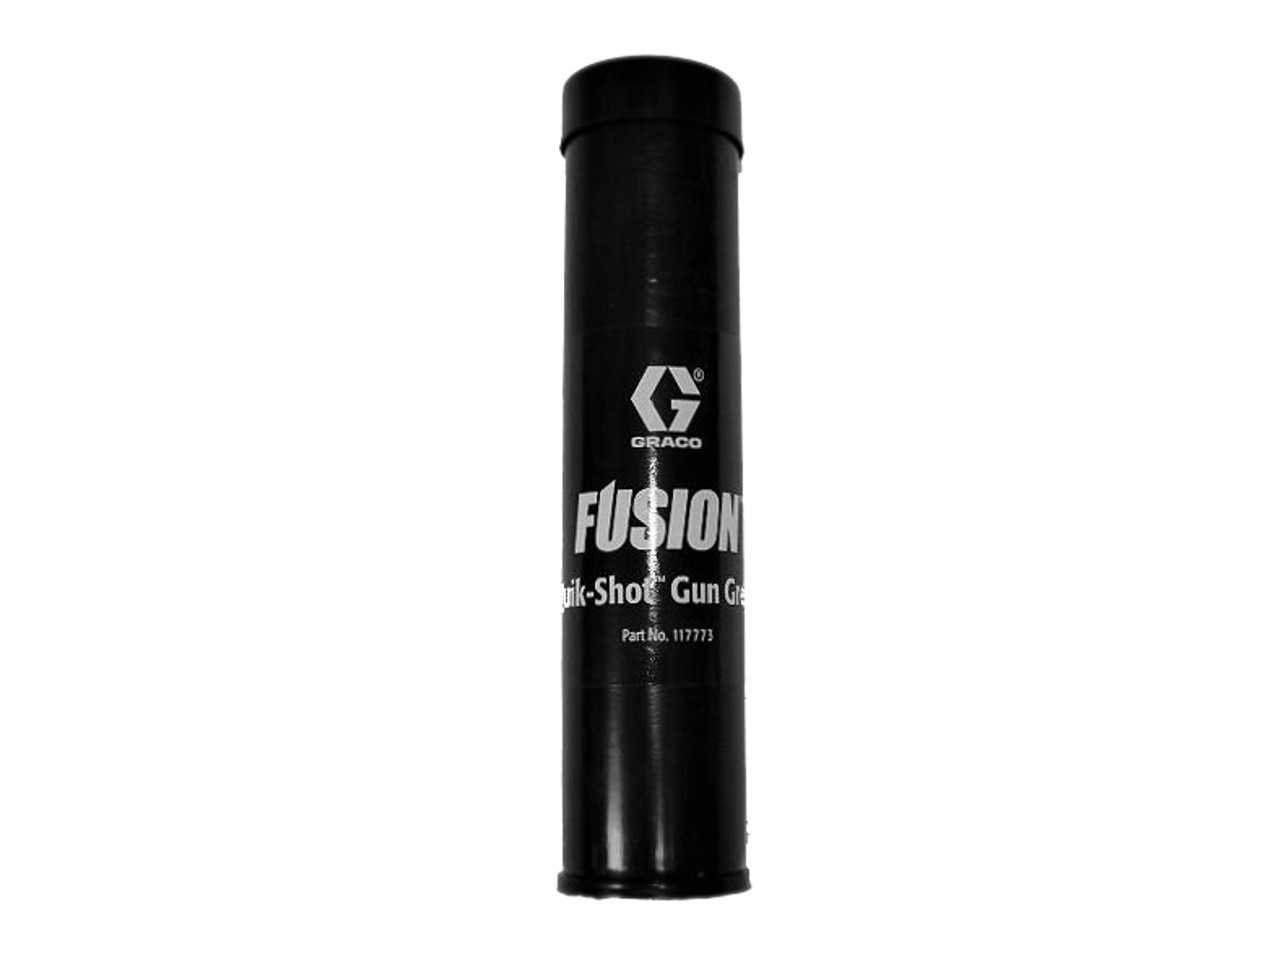 Fusion Quick-Shot Gun Grease Cartridge